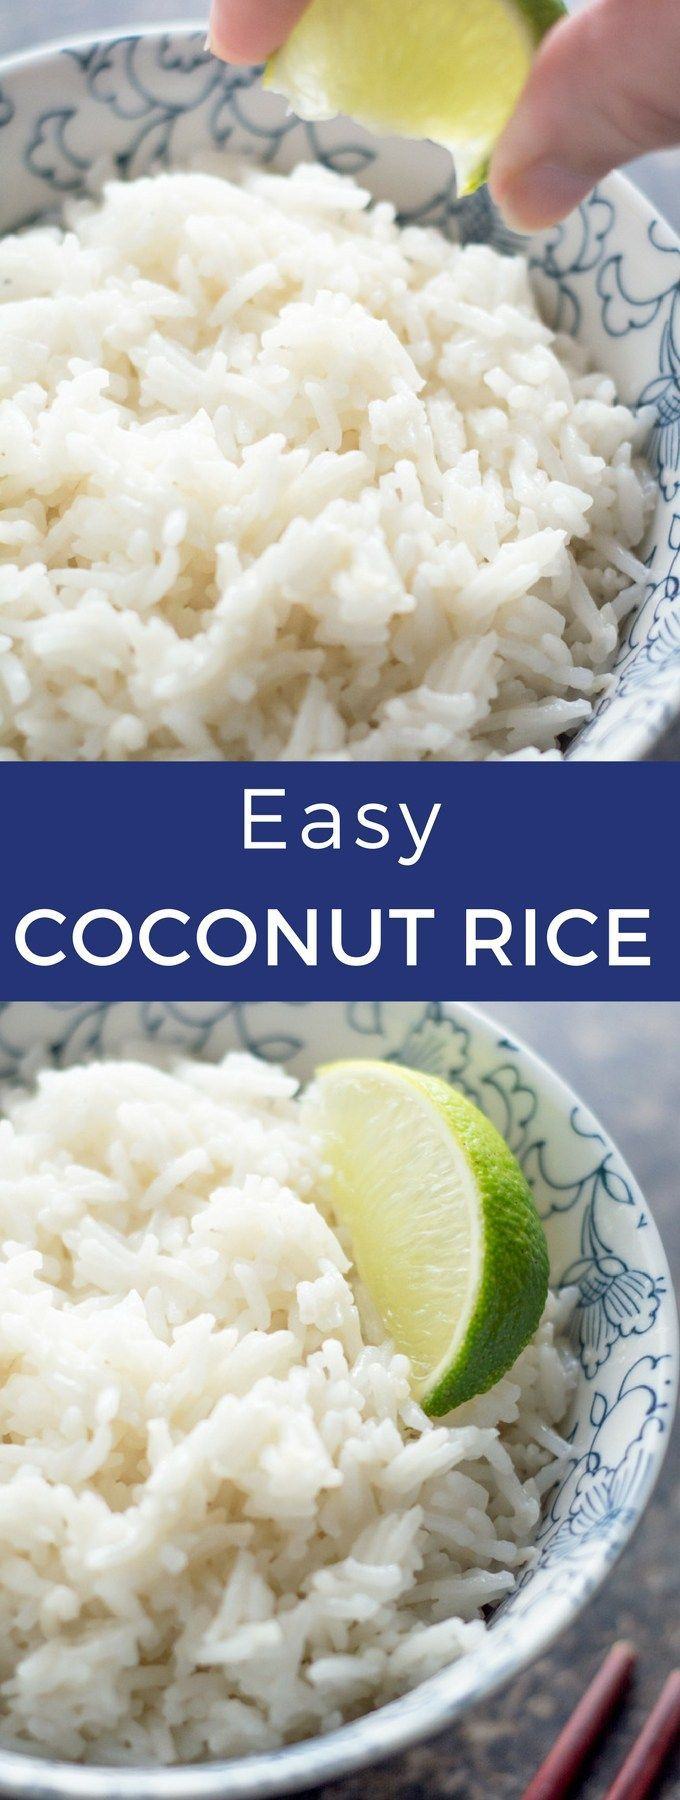 This Easy Coconut Rice takes only 5 ingredients and is ready in just over 20 minutes. Pair it with stir fry, chicken, or salmon for a quick weeknight dinner for one.